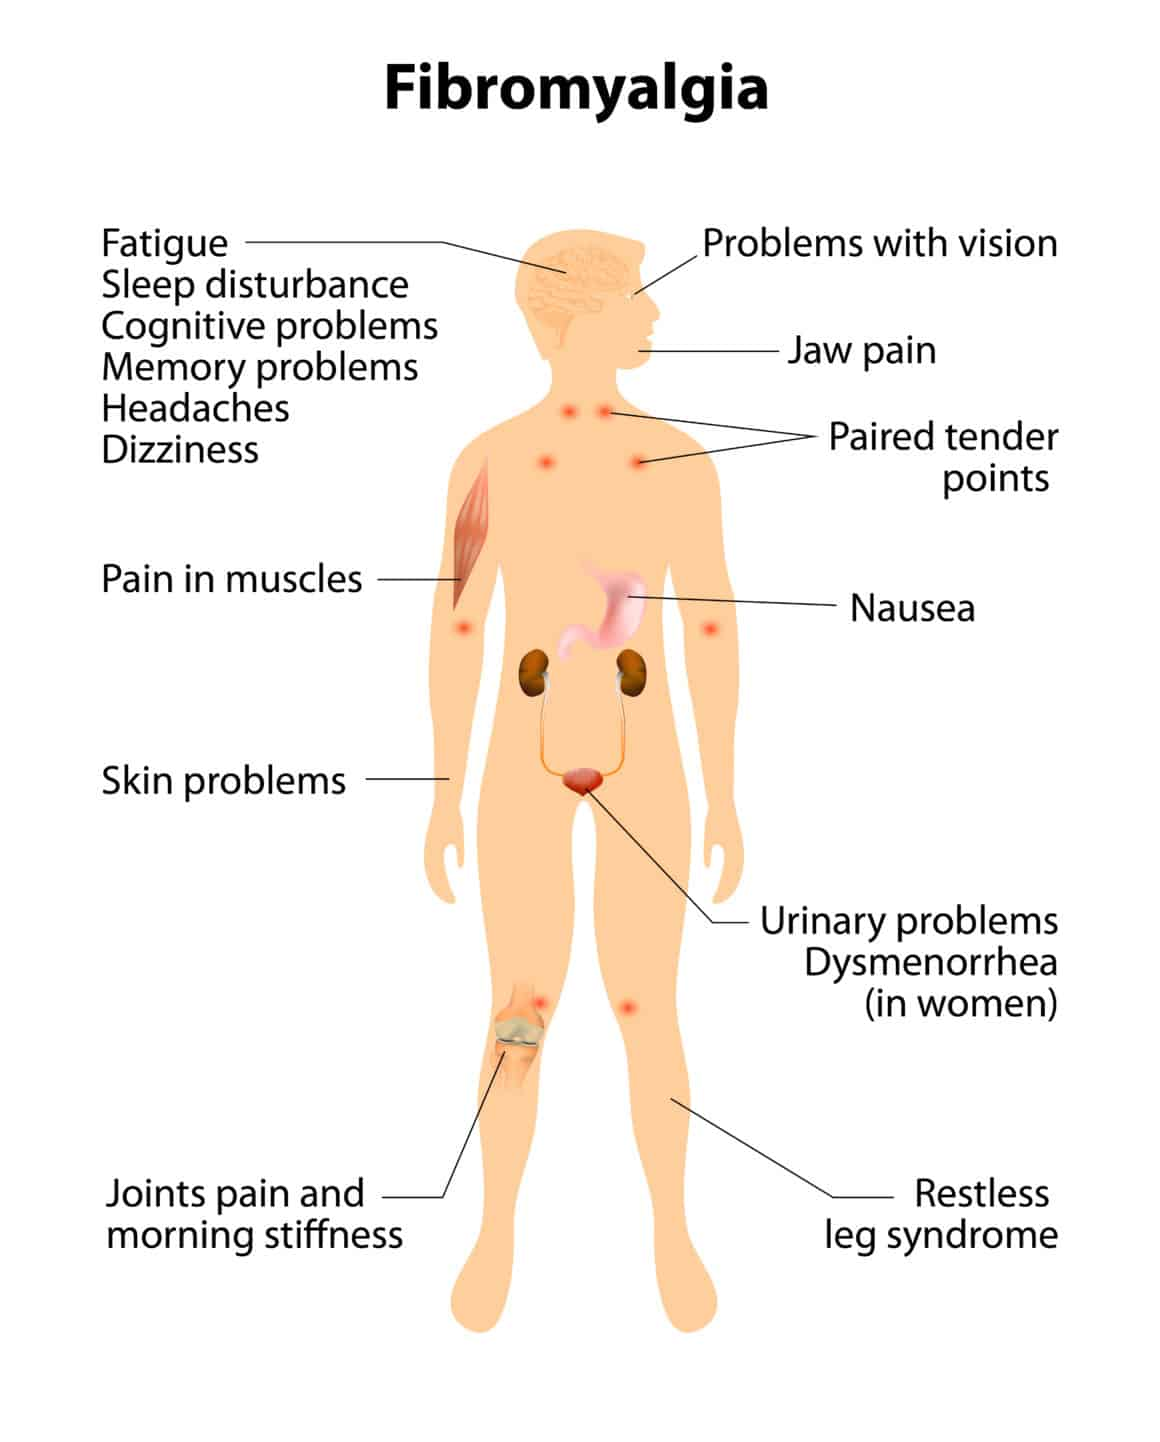 signs and symptoms of fibromyalgia. Human silhouette with internal organs